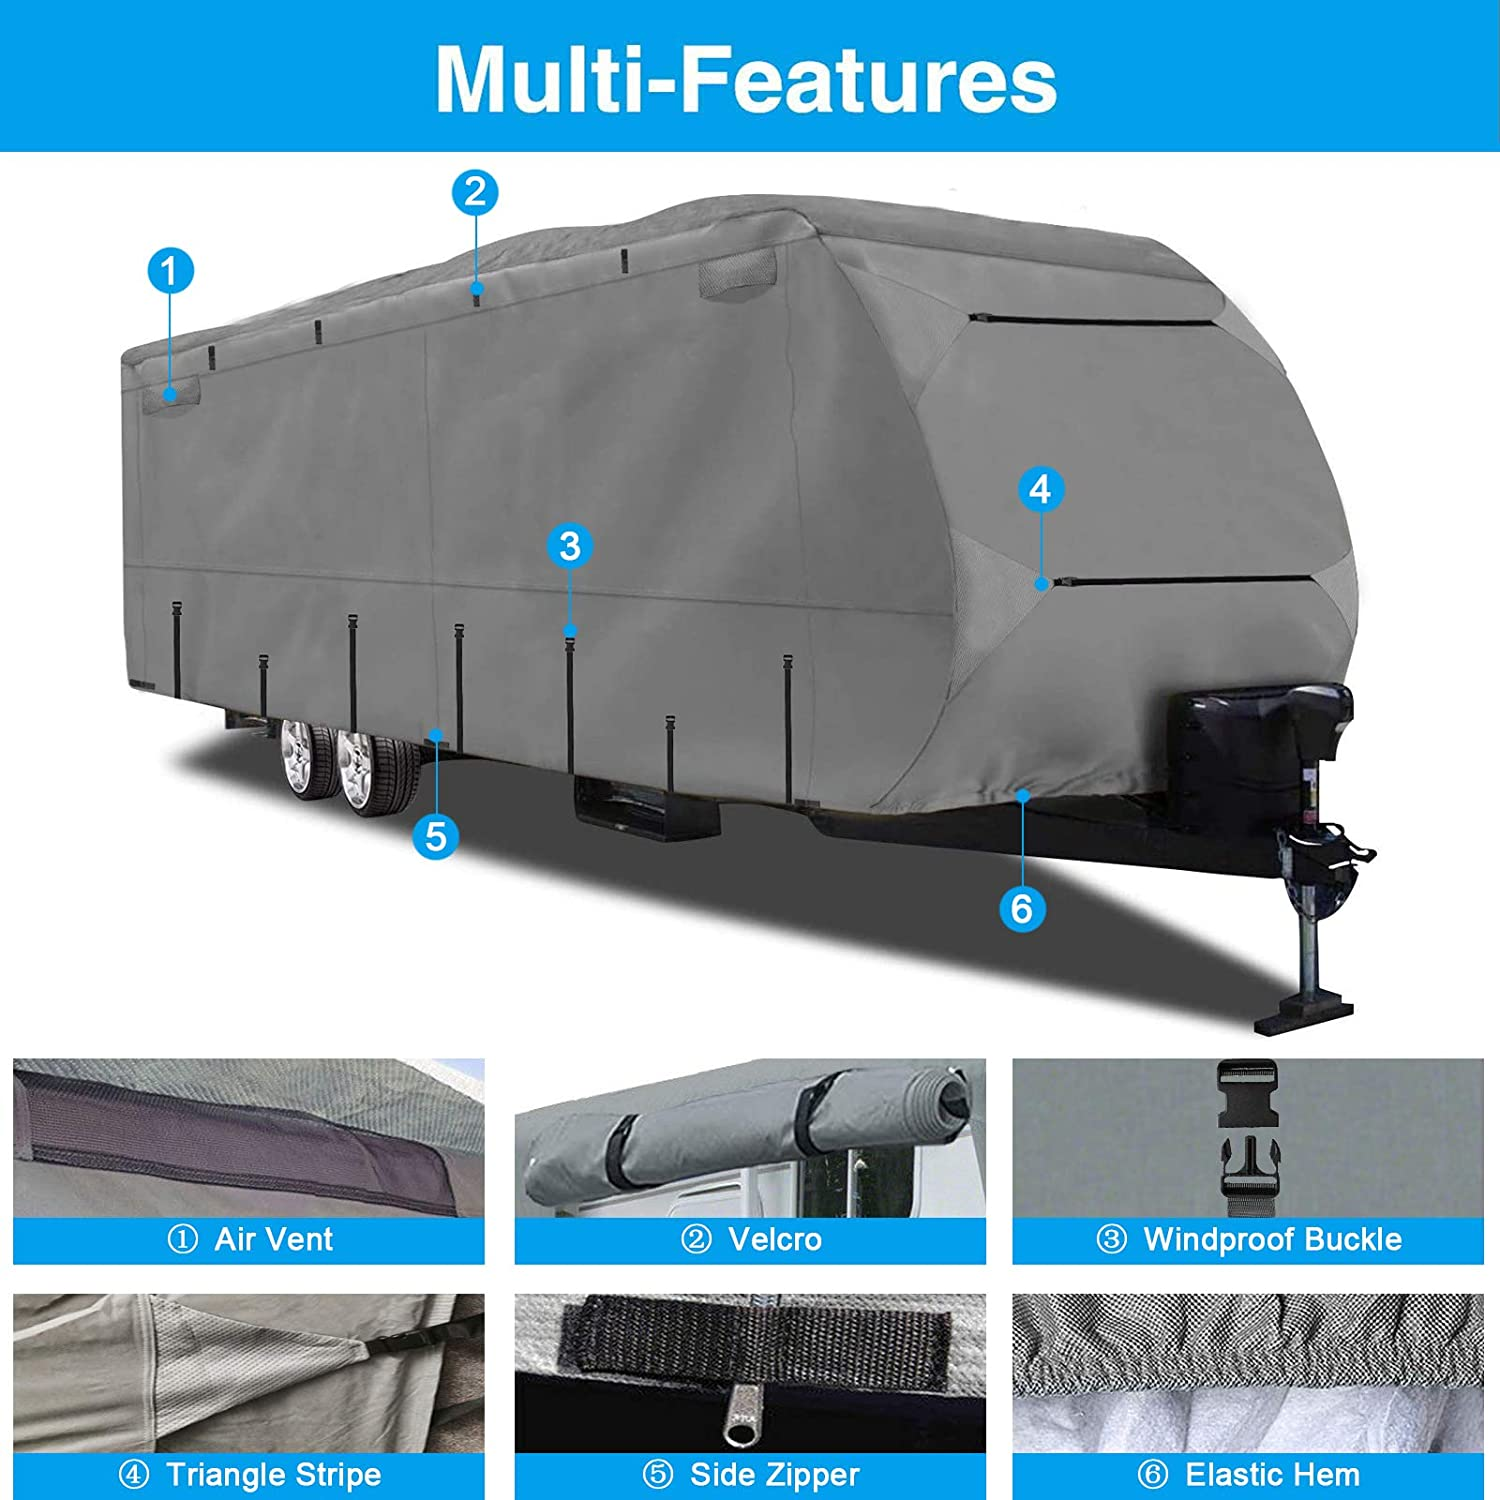 16-18 Ripstop Waterproof RVs Covers with Storage Bag and Windproof Buckles Szblnsm 420D Heavy Duty Travel Trailer Cover